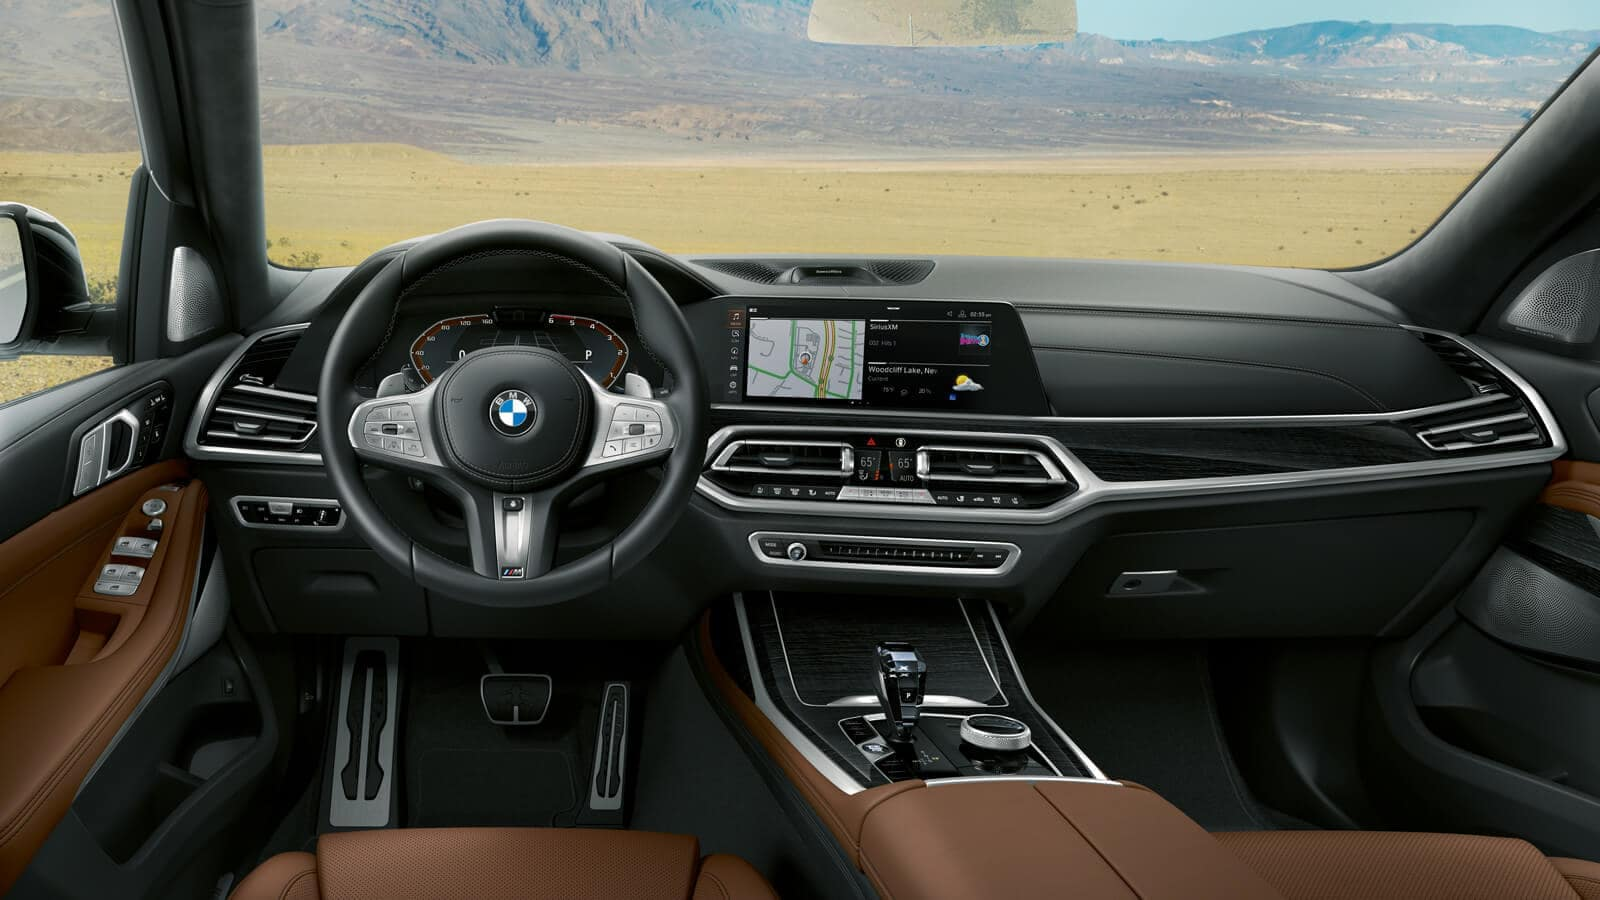 2019 BMW X7 central information display